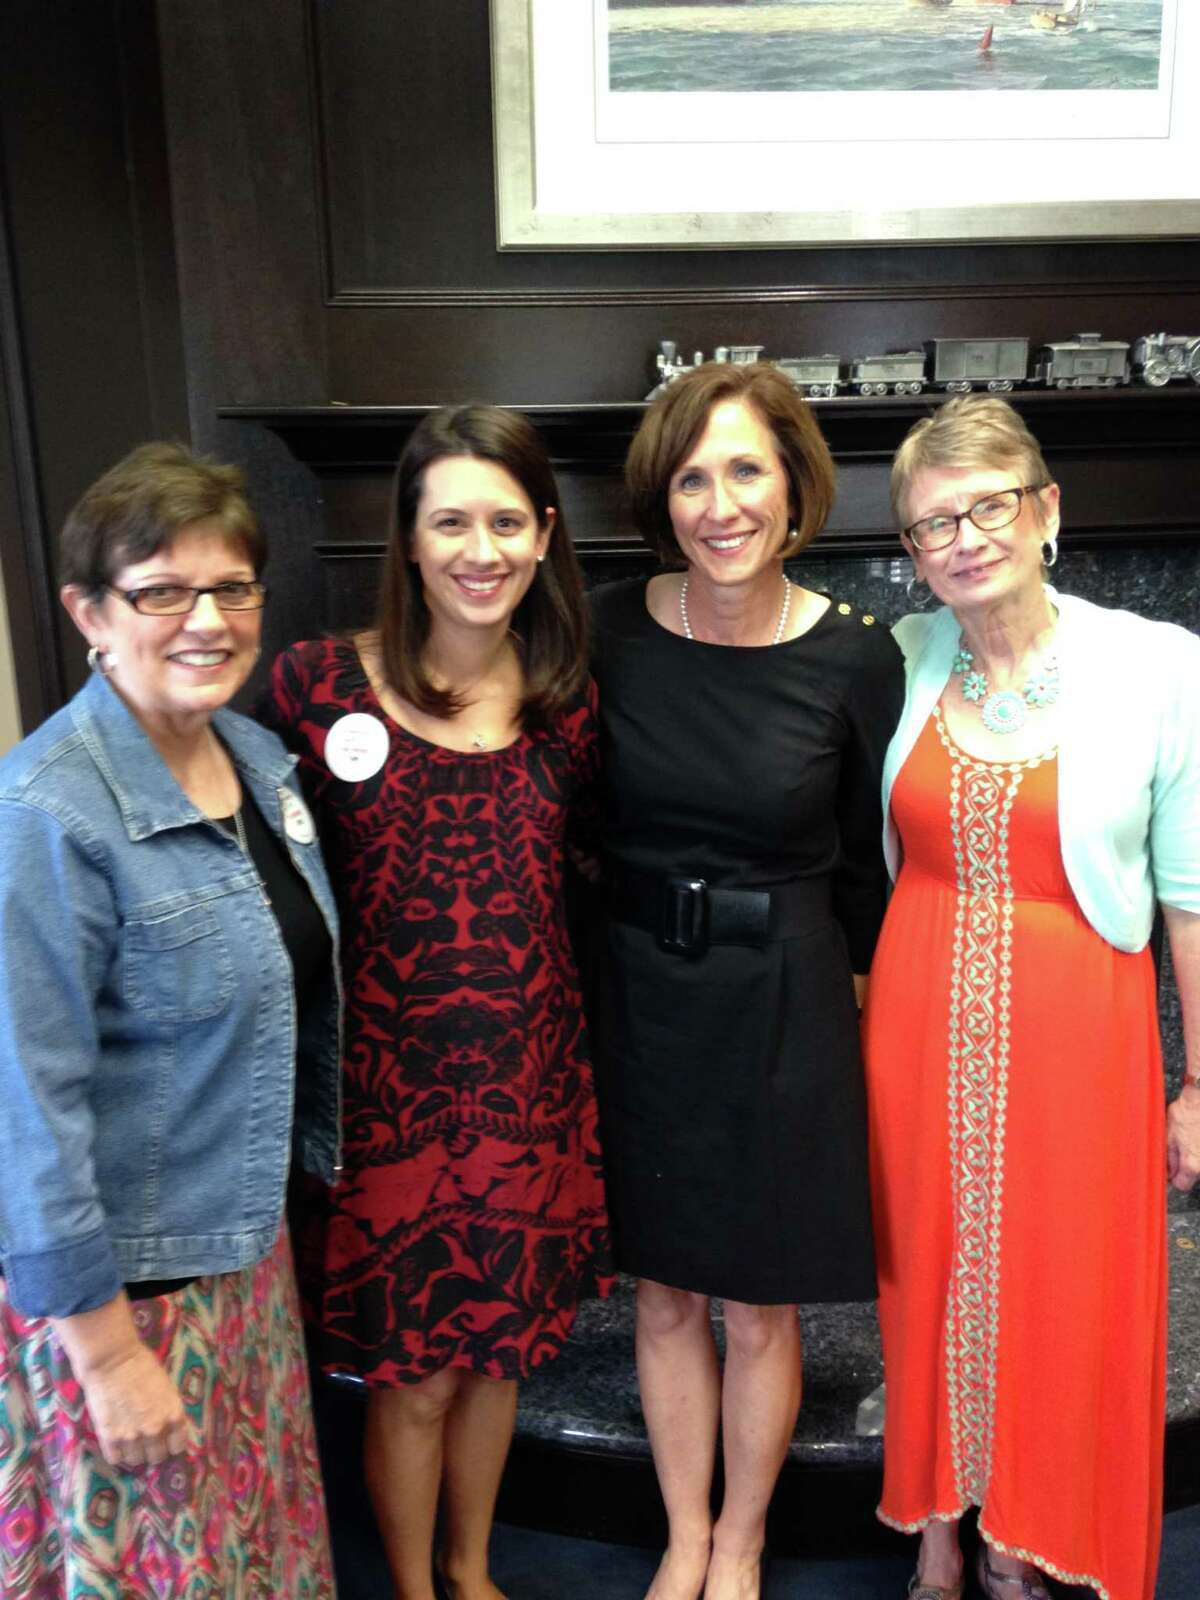 Representatives of Maddie's Mission visited state legislators to promote public education about Cytomegalovirus. From left are:Ann Blalock, Farah Armstrong, state Sen. Lois Kolkhorst, R-Brenham, and Becky Ghazi. Not pictured is Dr. Gail Demmler Harrison, CMV Expert at Baylor College of Medicine and Texas Children's Hospital.